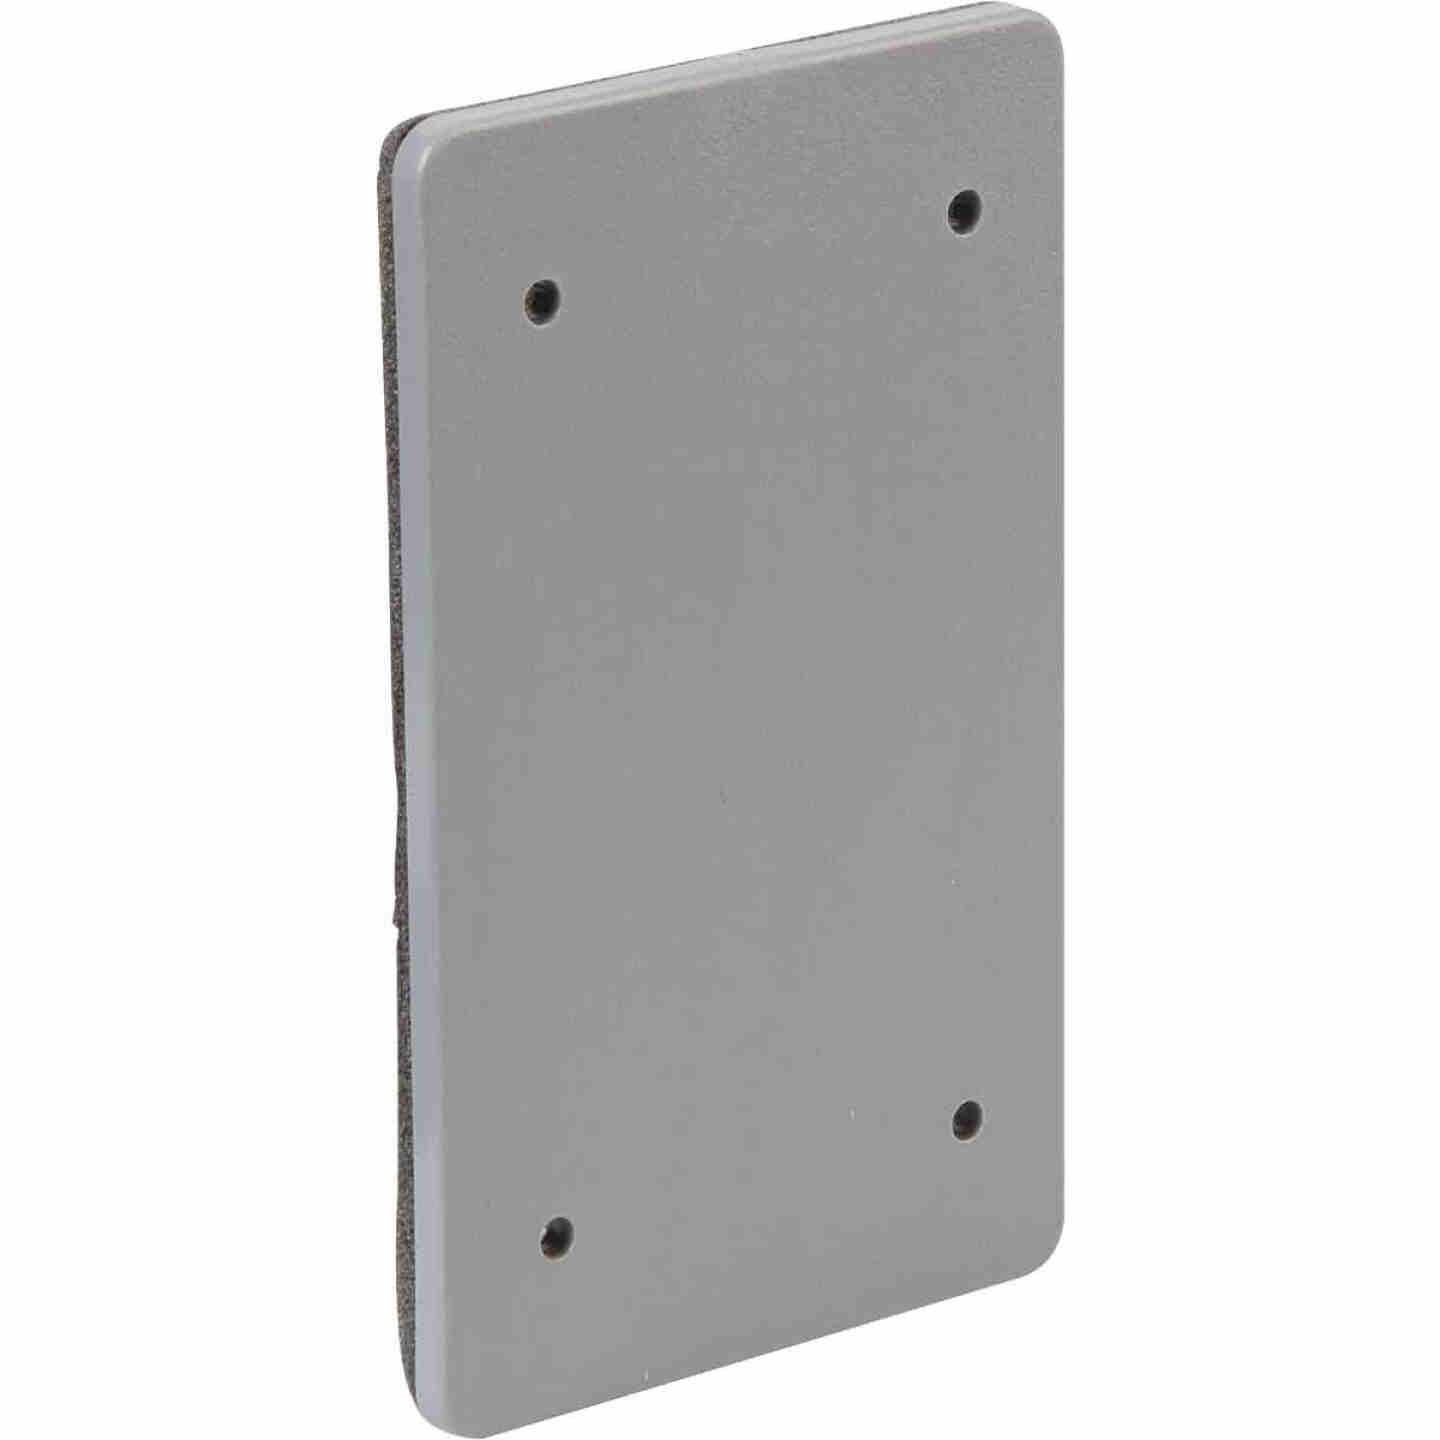 Bell Single Gang Blank Rectangular Polycarbonate Gray Weatherproof Outdoor Box Cover Image 3